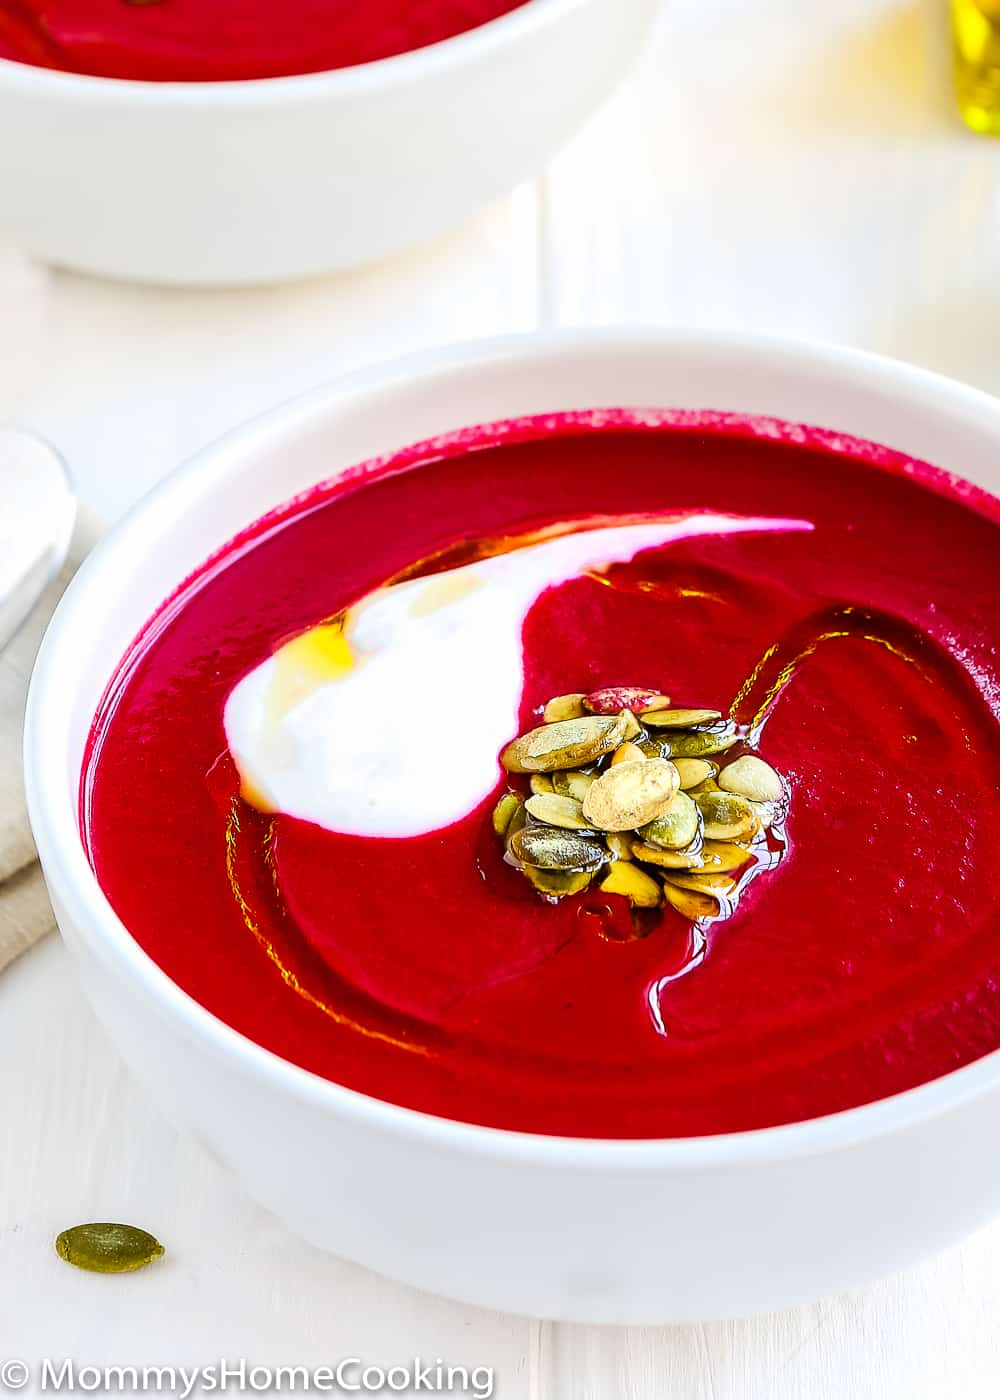 Easy Instant Pot Beet and Leek Soup | Mommy's Home Cooking